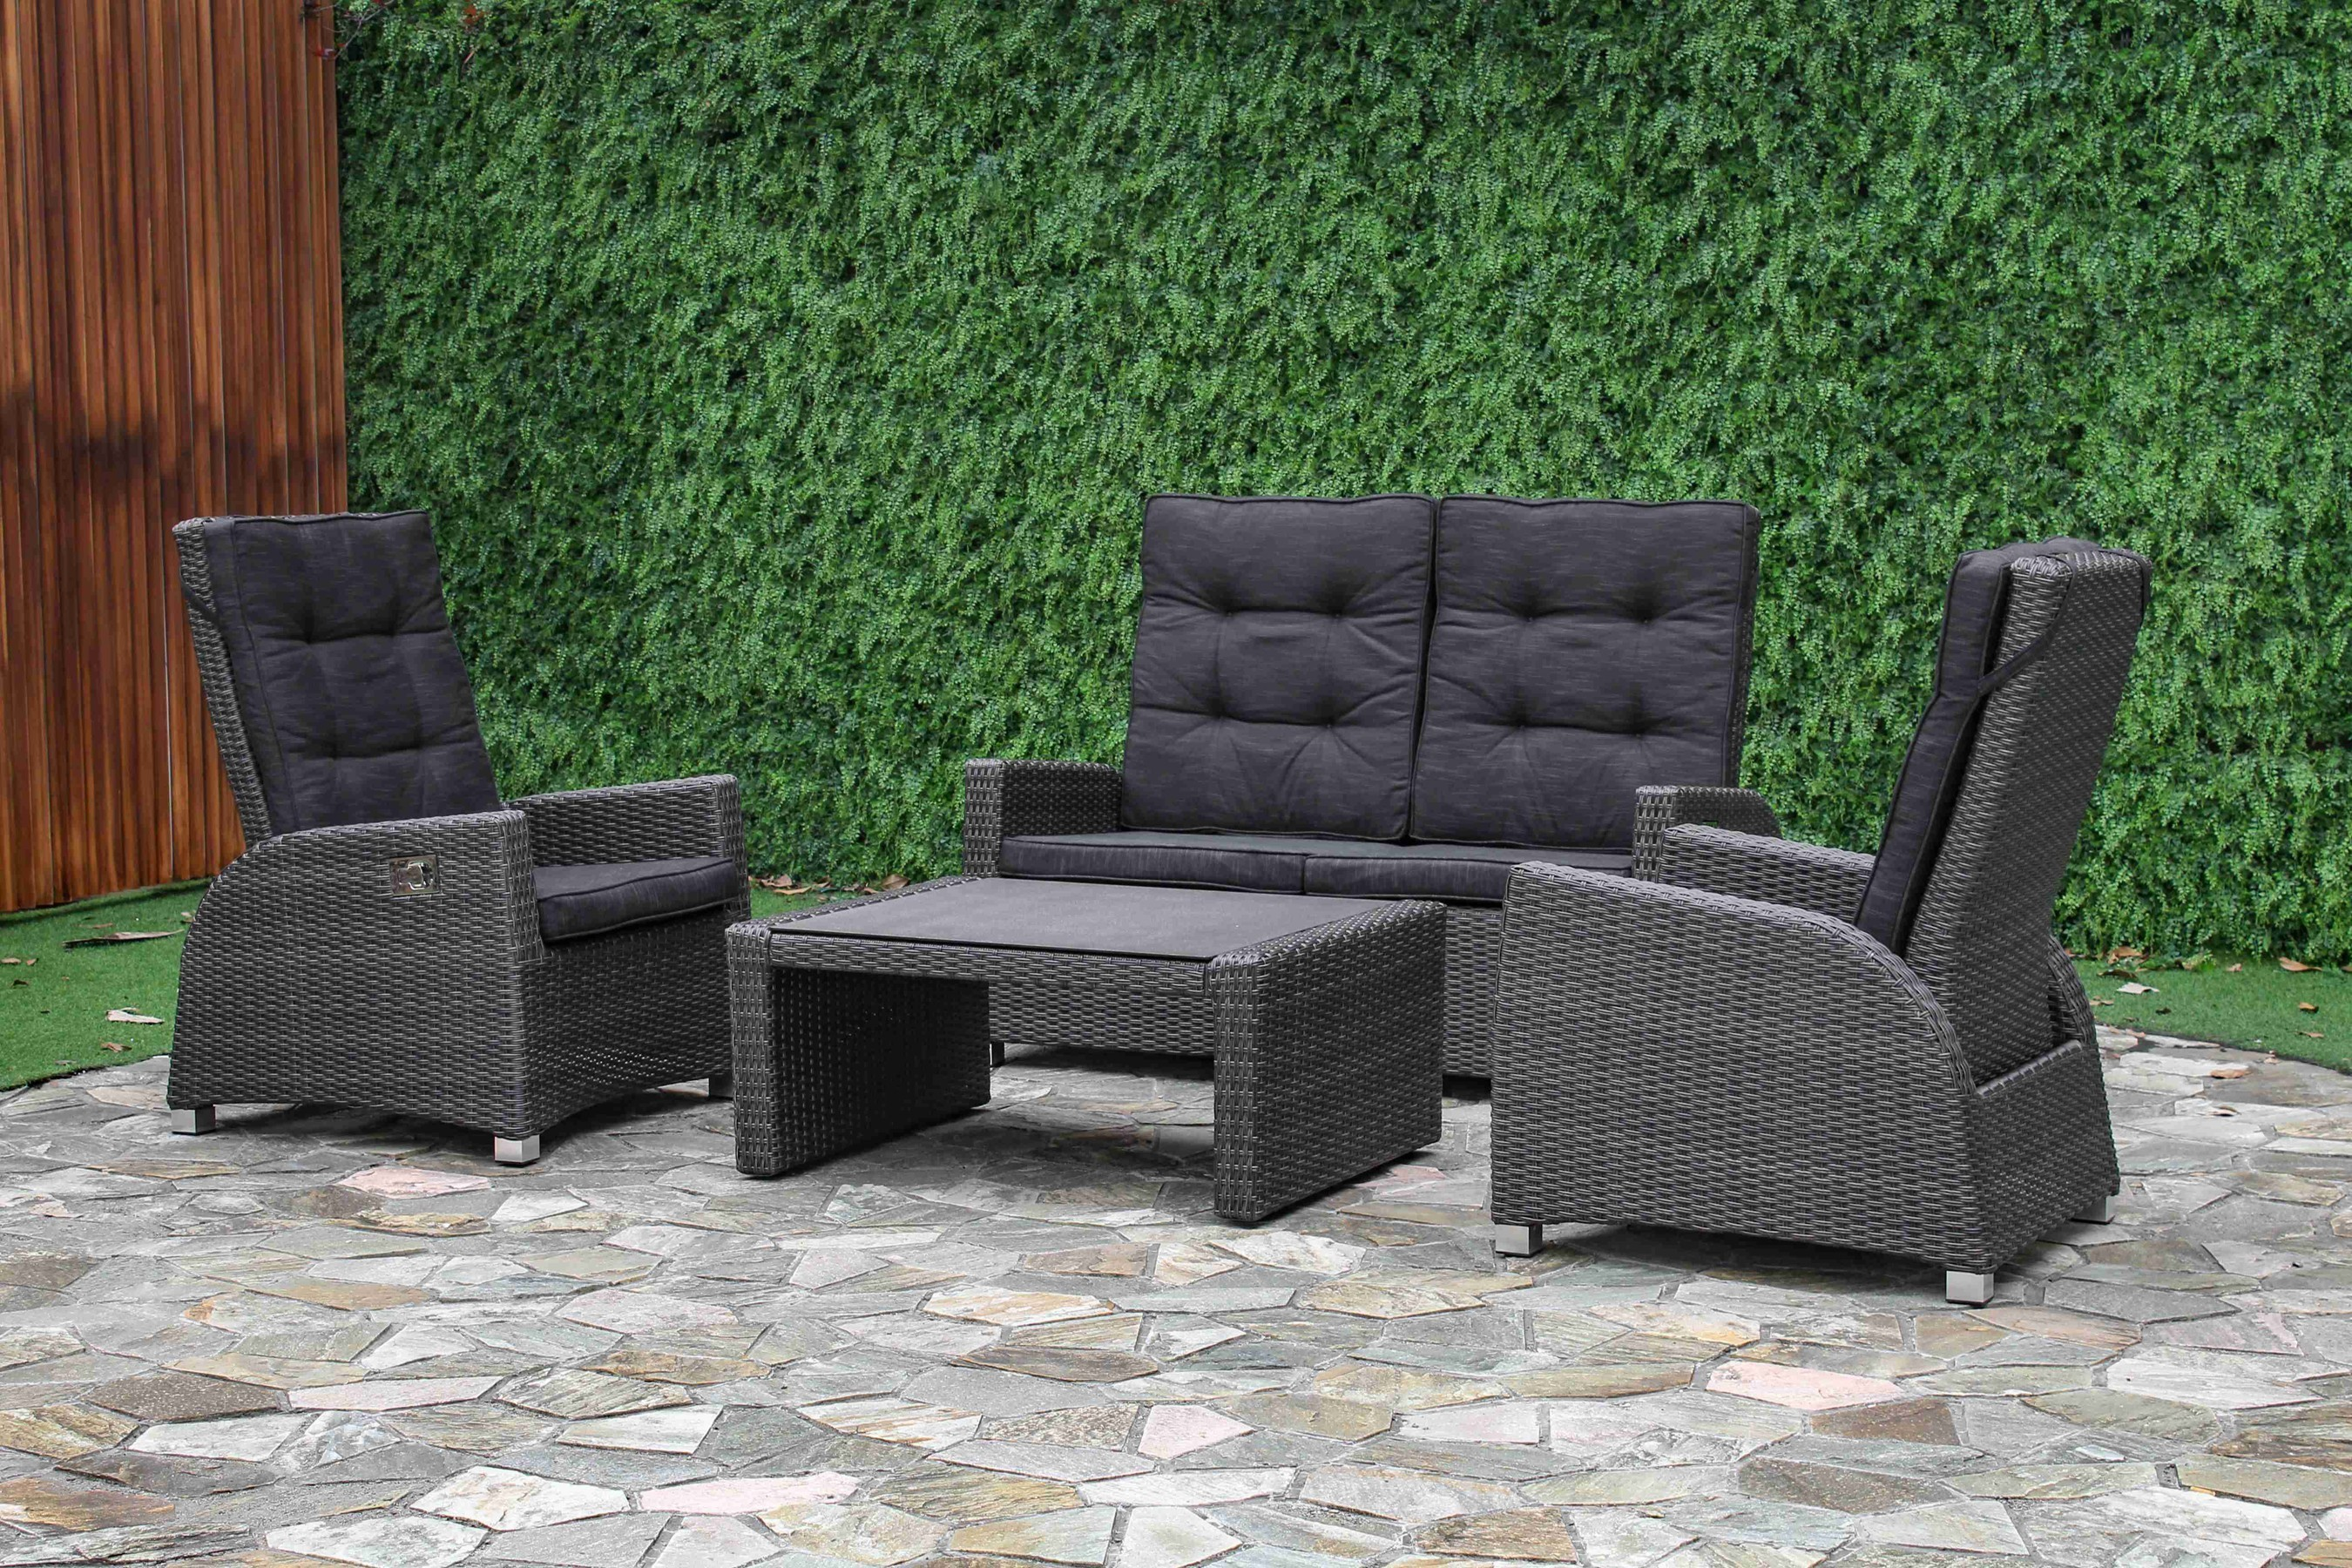 Sungörl Loungemöbel / Lounge Set Malaga Polyrattan anthrazit - bei ...